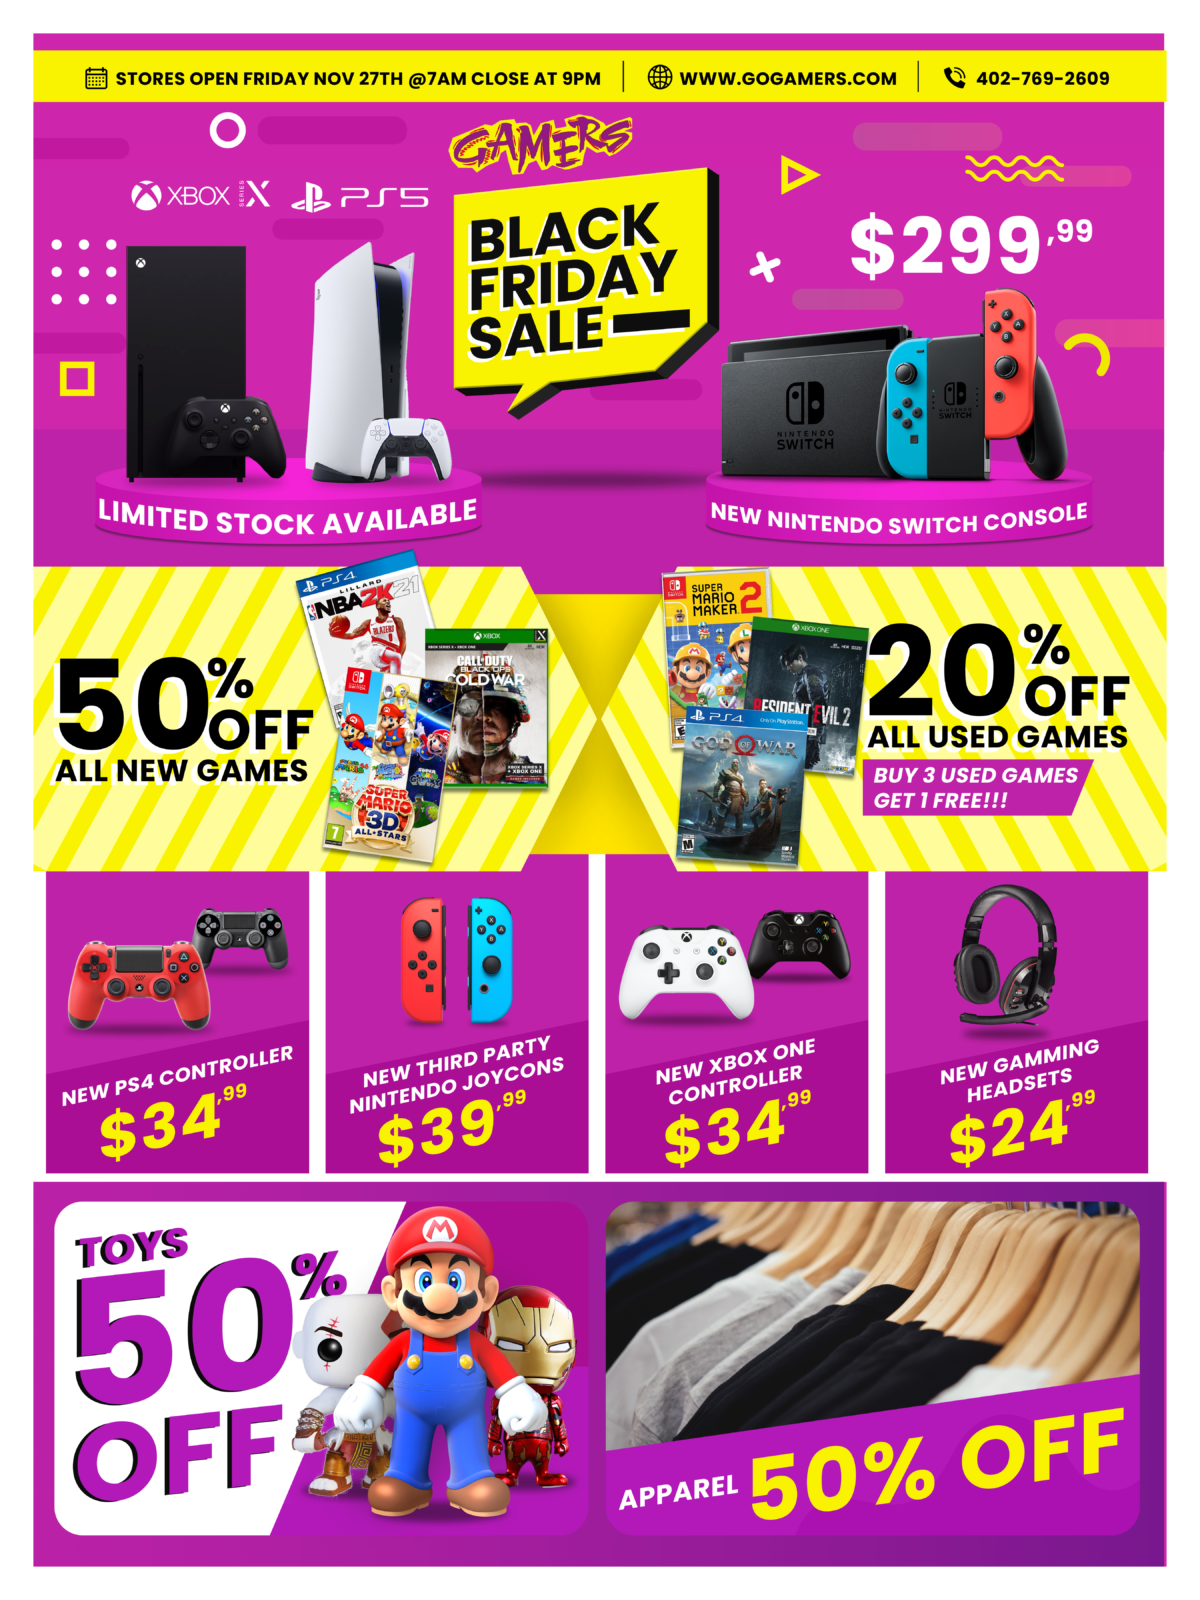 Gamers Black Friday Sales 2020!